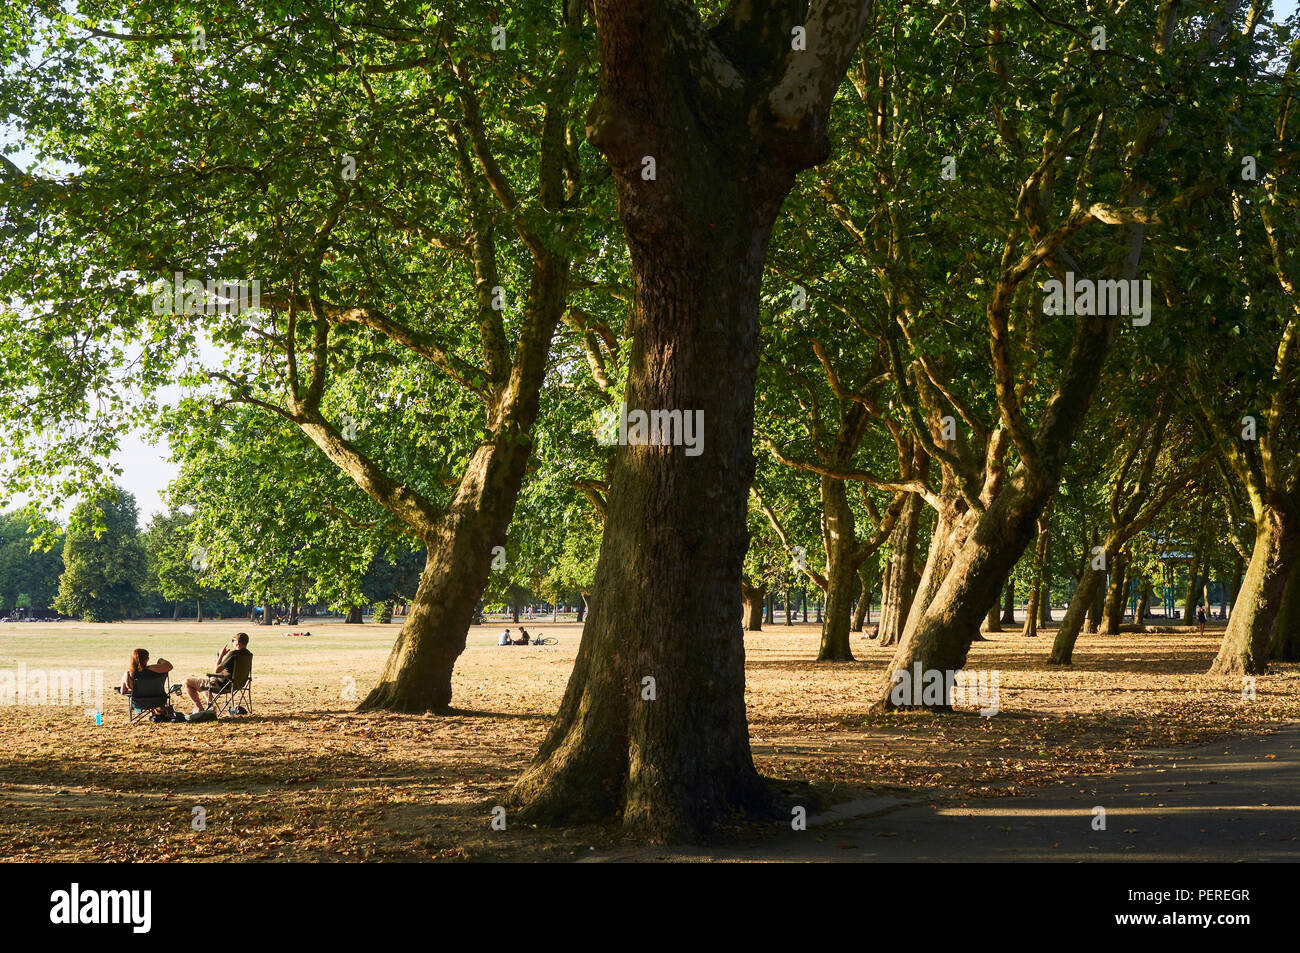 People sitting in the sunshine amongst trees in Victoria Park, East London, UK - Stock Image